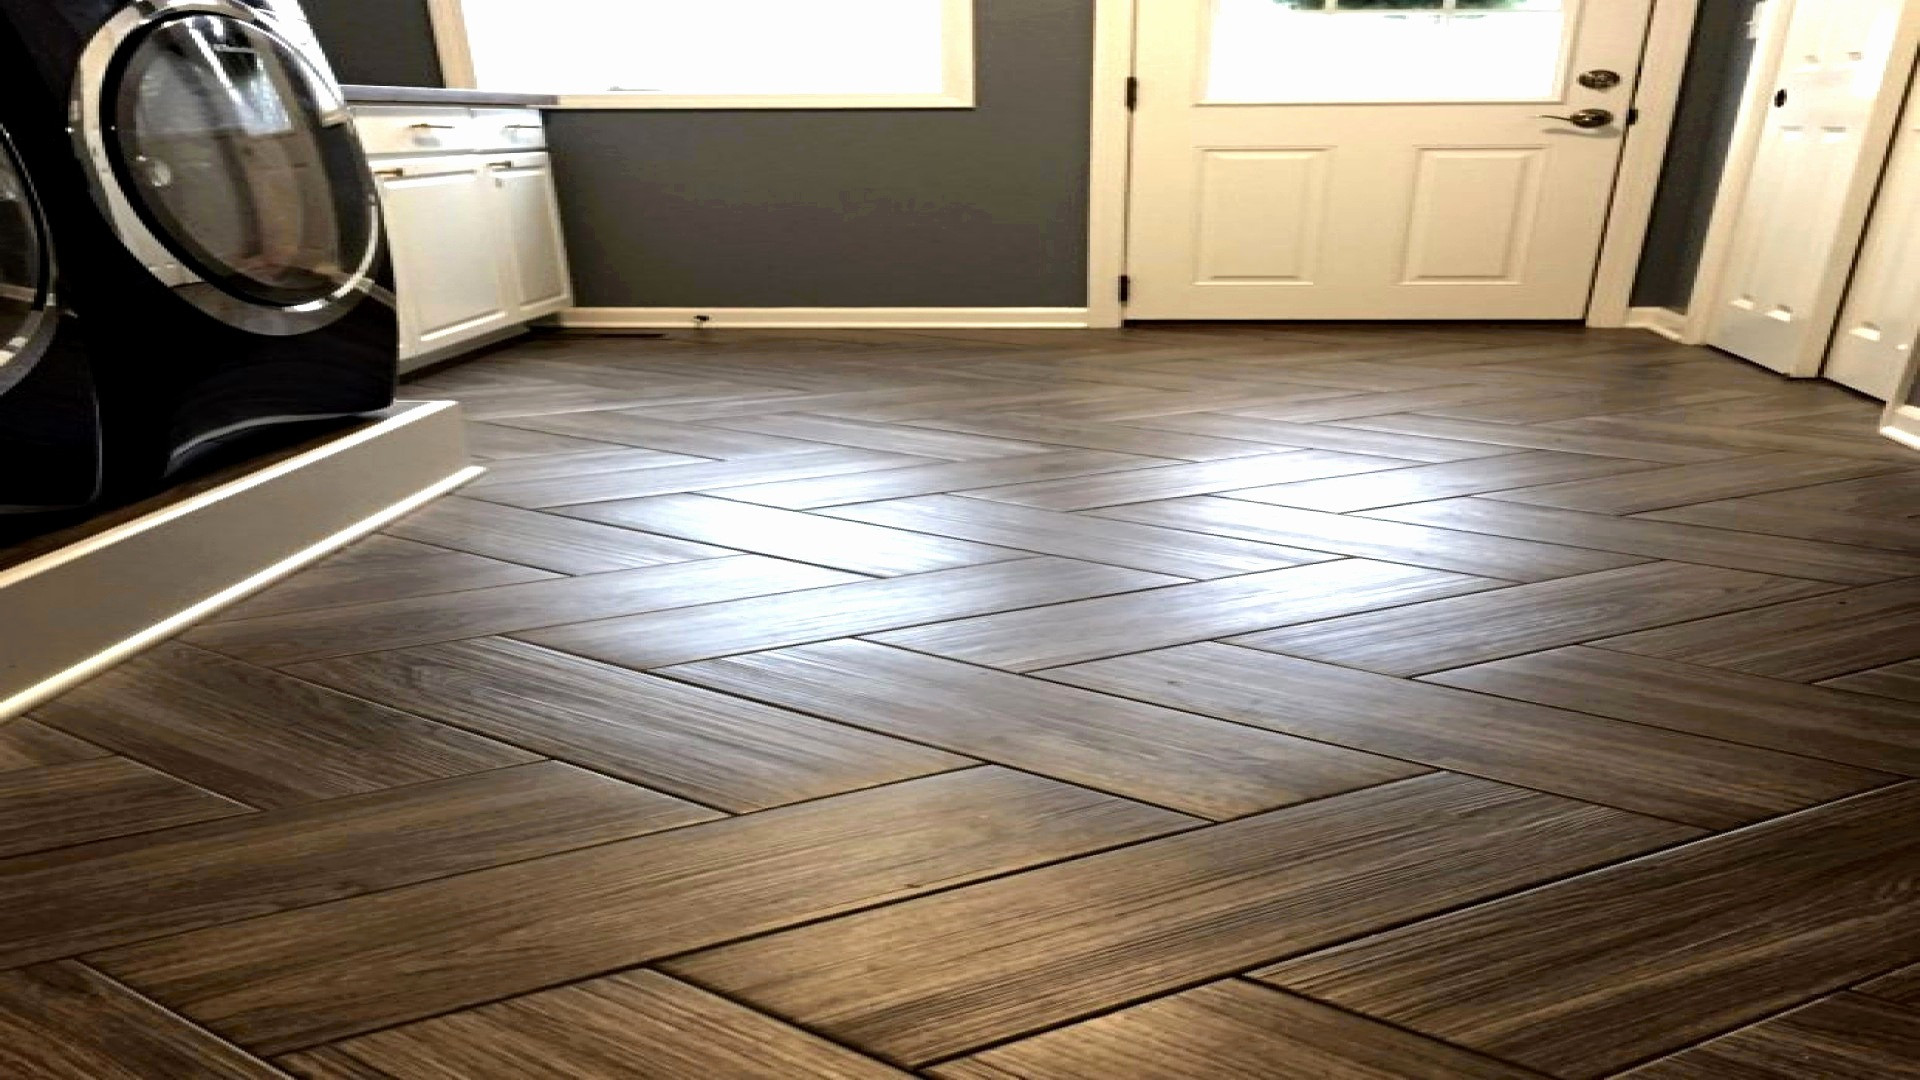 3 4 hardwood flooring of flooring design ideas find ideas and inspiration for flooring with regard to wpc vinyl flooring lovely 52 awesome wood plank flooring 52 s image